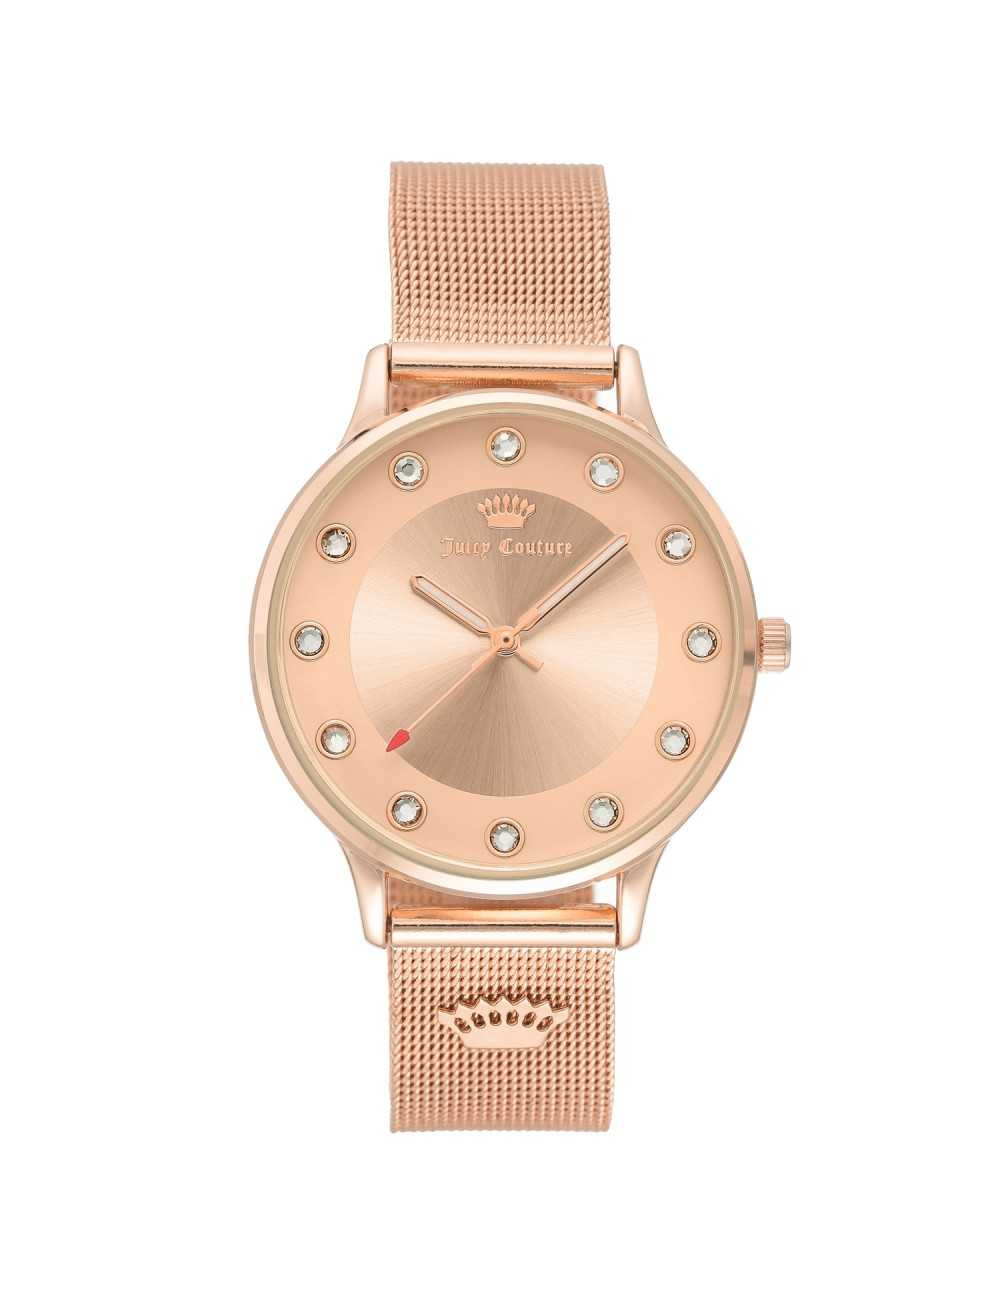 Hodinky Juicy Couture JC / 1128RGRG